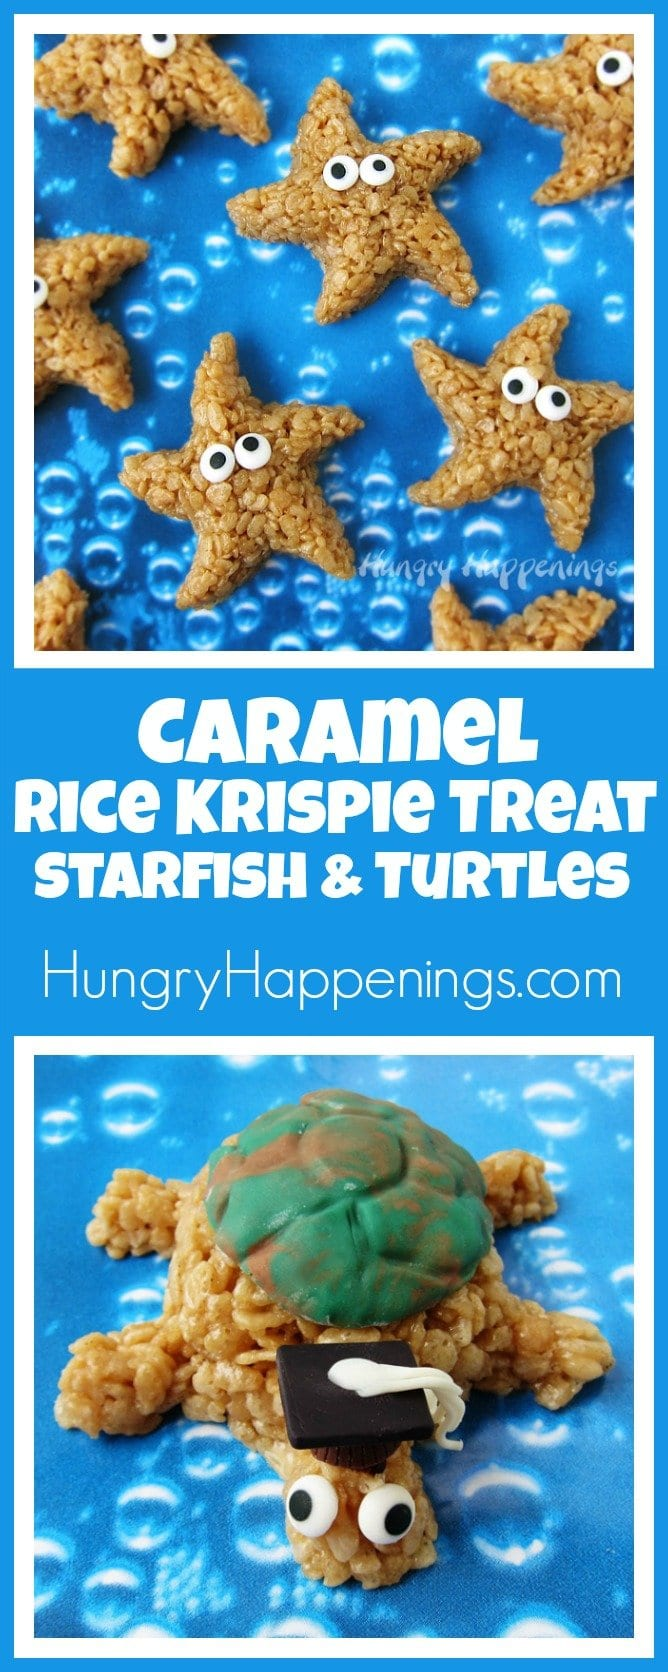 Take your cereal treats to a whole new level. Instead of marshmallows, coat the crisp rice cereal in caramel, then mold them into adorable Caramel Rice Krispie Treat Starfish and Turtles.